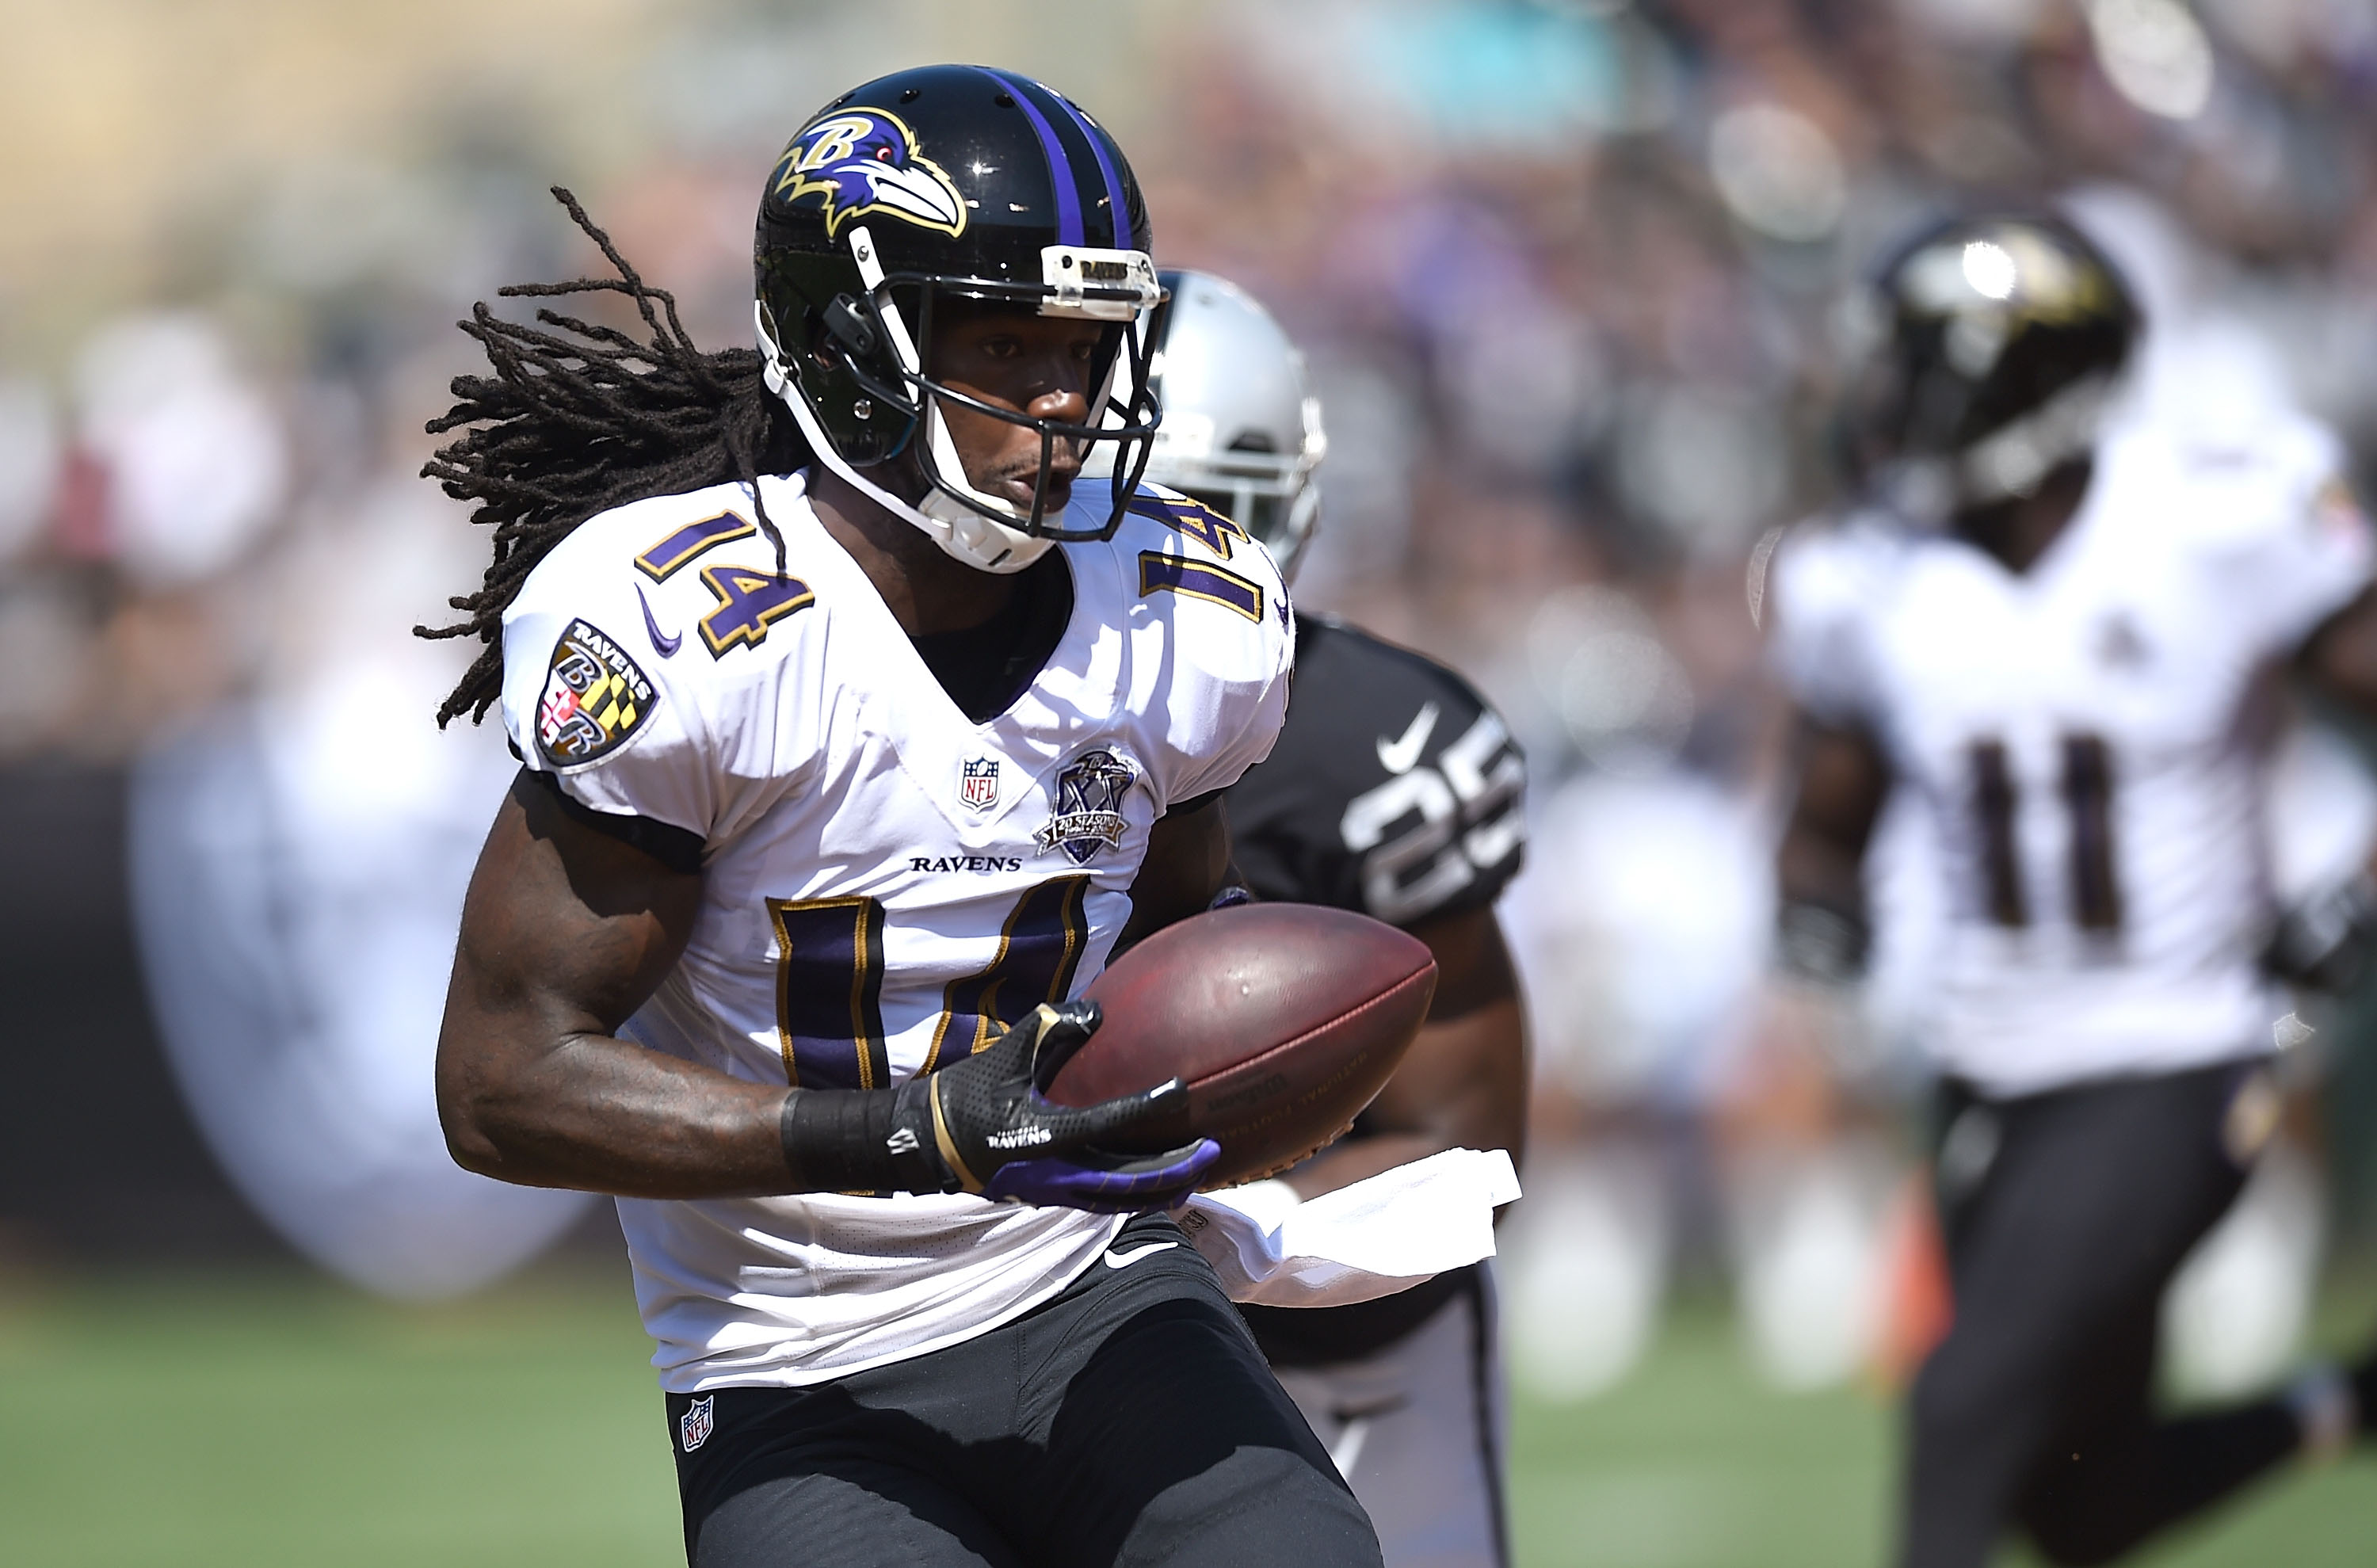 Marlon Brown of the Baltimore Ravens receives a pass on Sept. 20, 2015. (credit: Thearon W. Henderson/Getty Images)